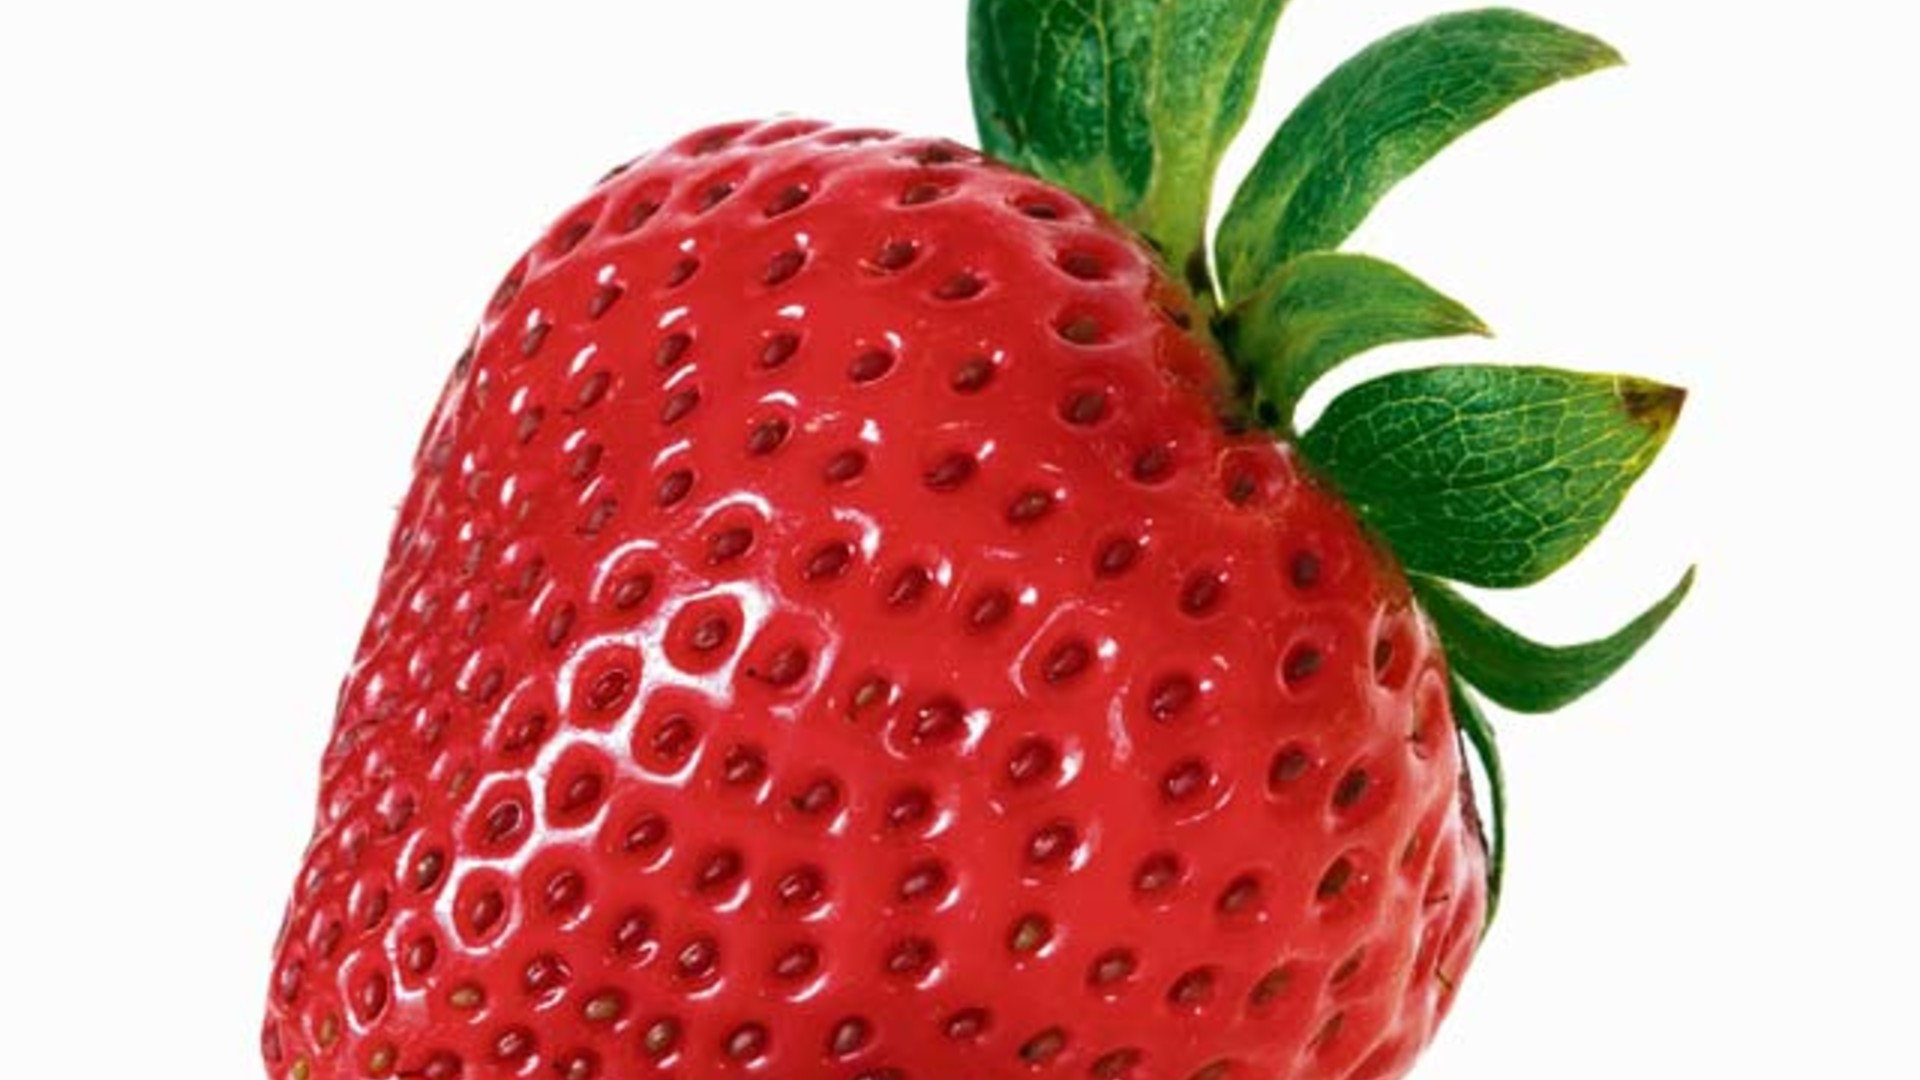 Negotiations with India and New Strawberry Variety